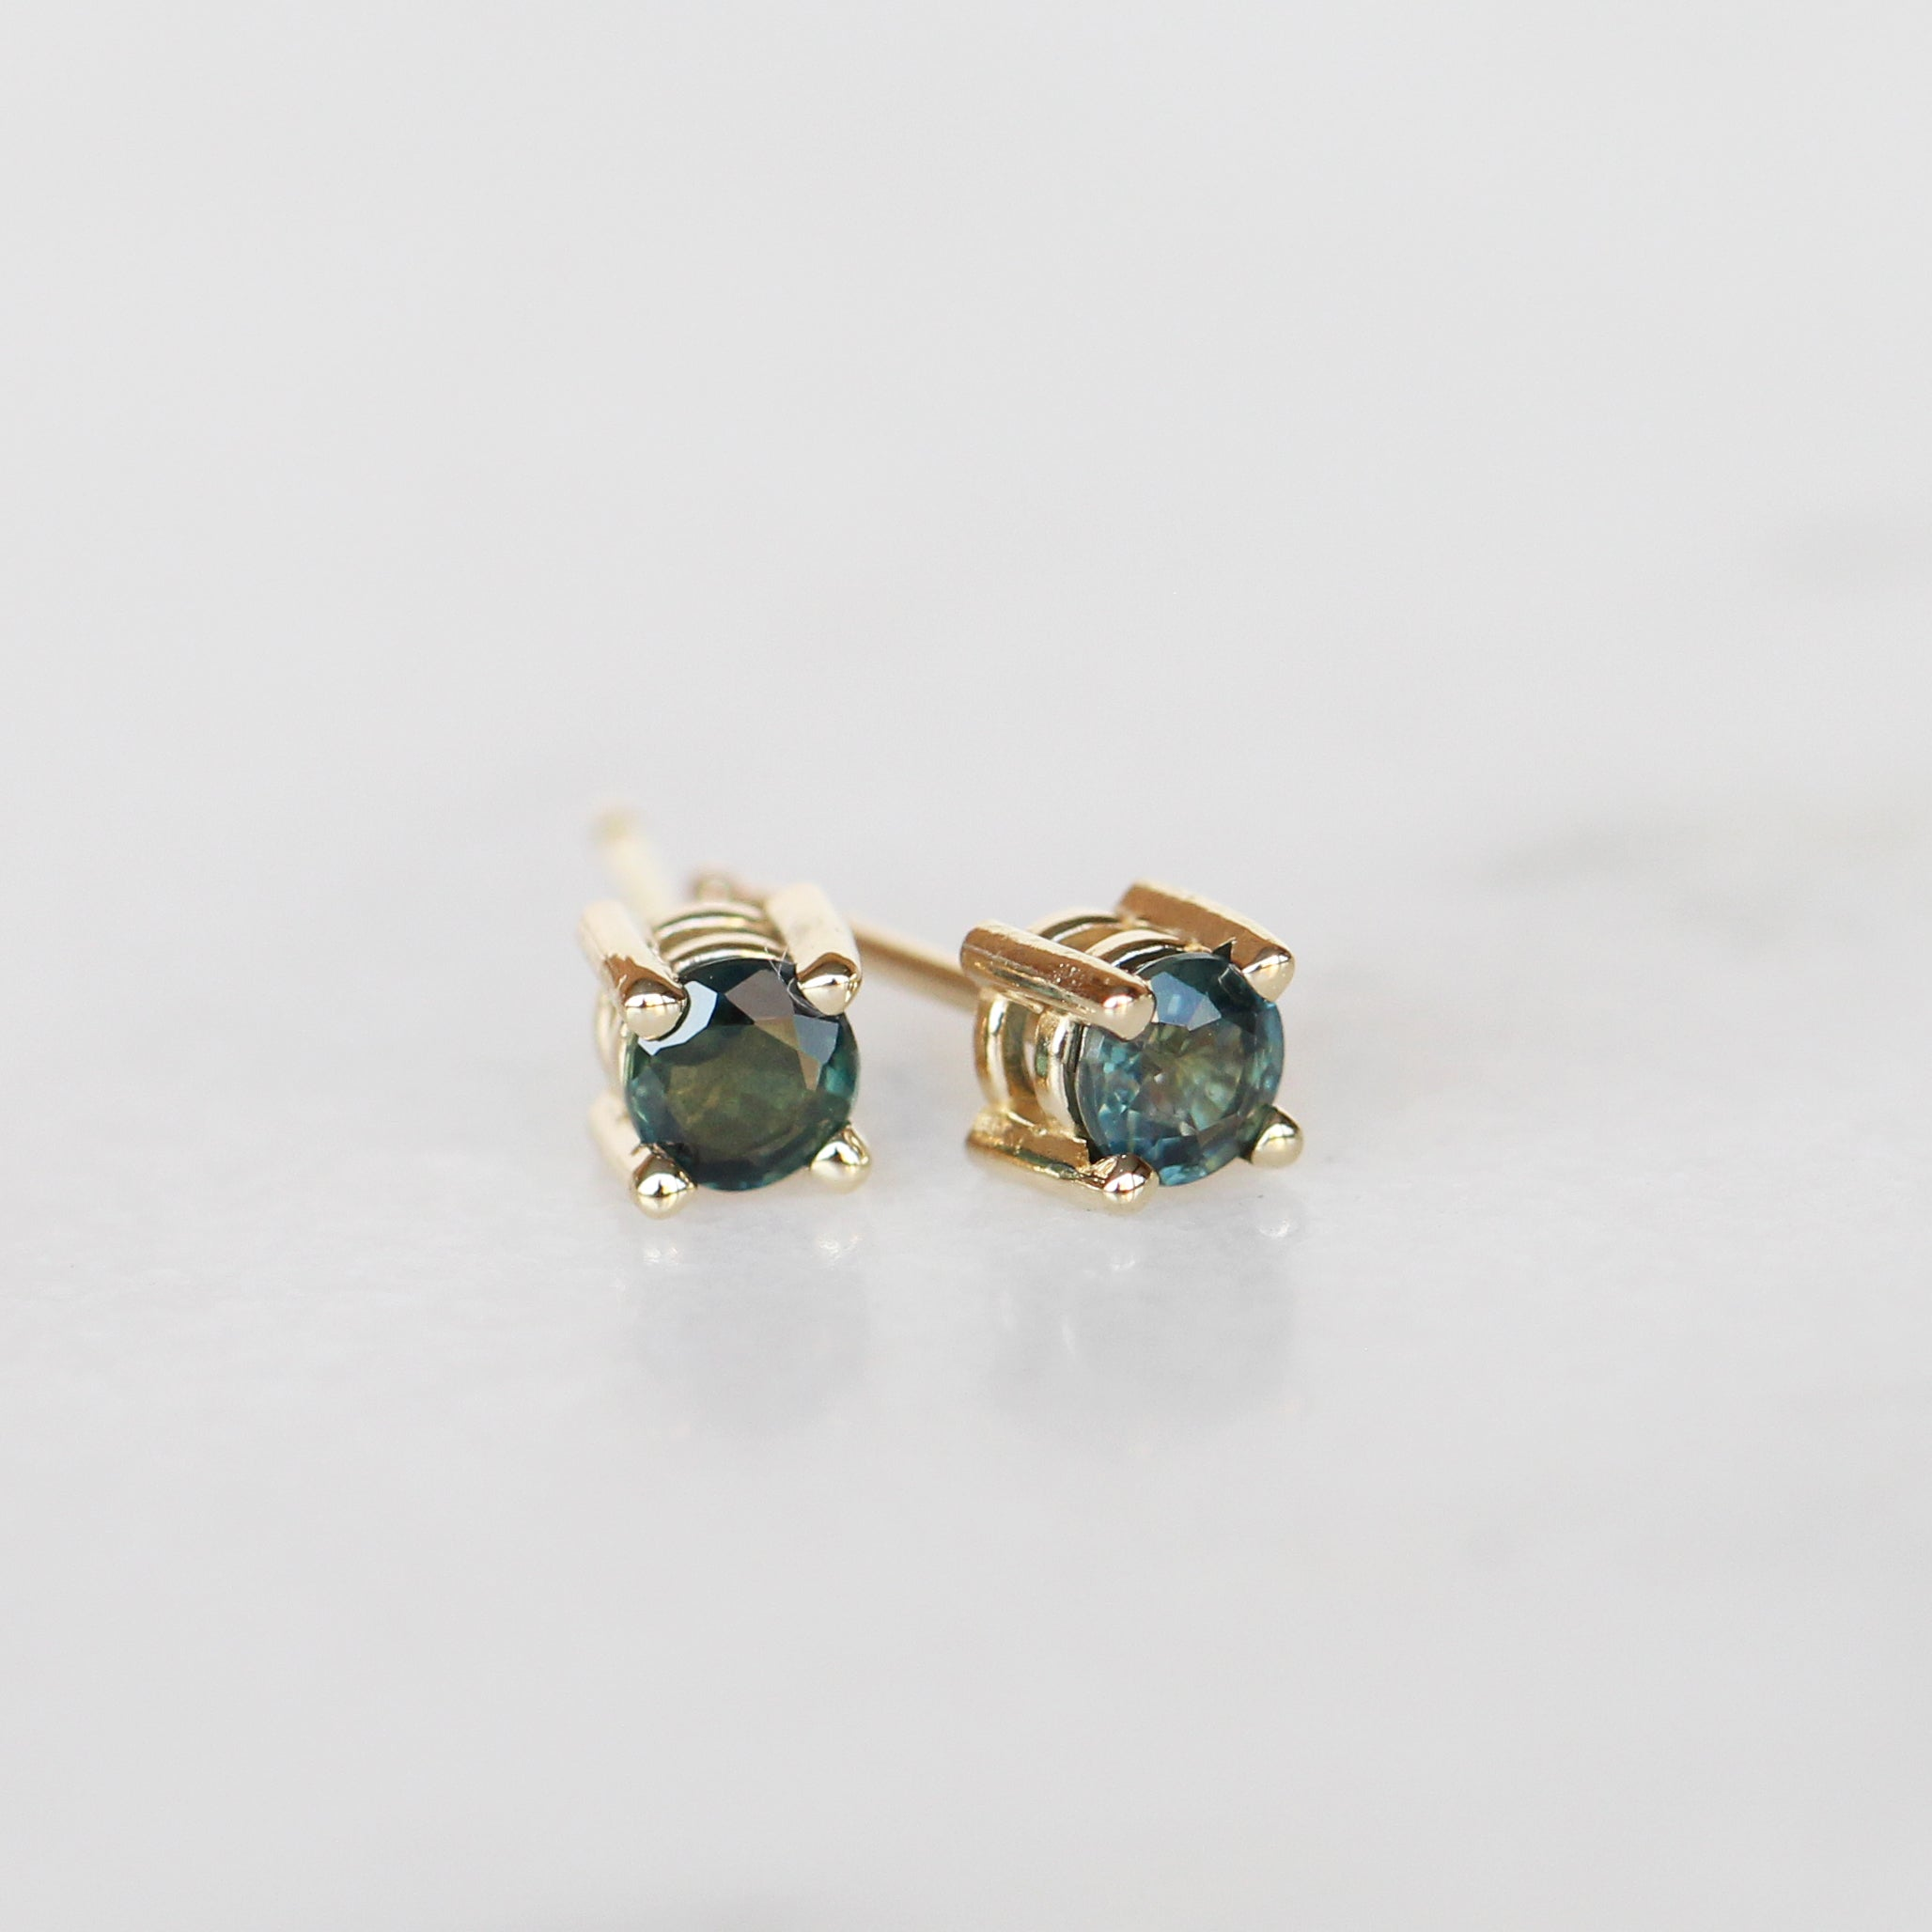 14k Gold Earring Studs with Teal Blue Green Sapphires - Made to Order - Celestial Diamonds ® by Midwinter Co.